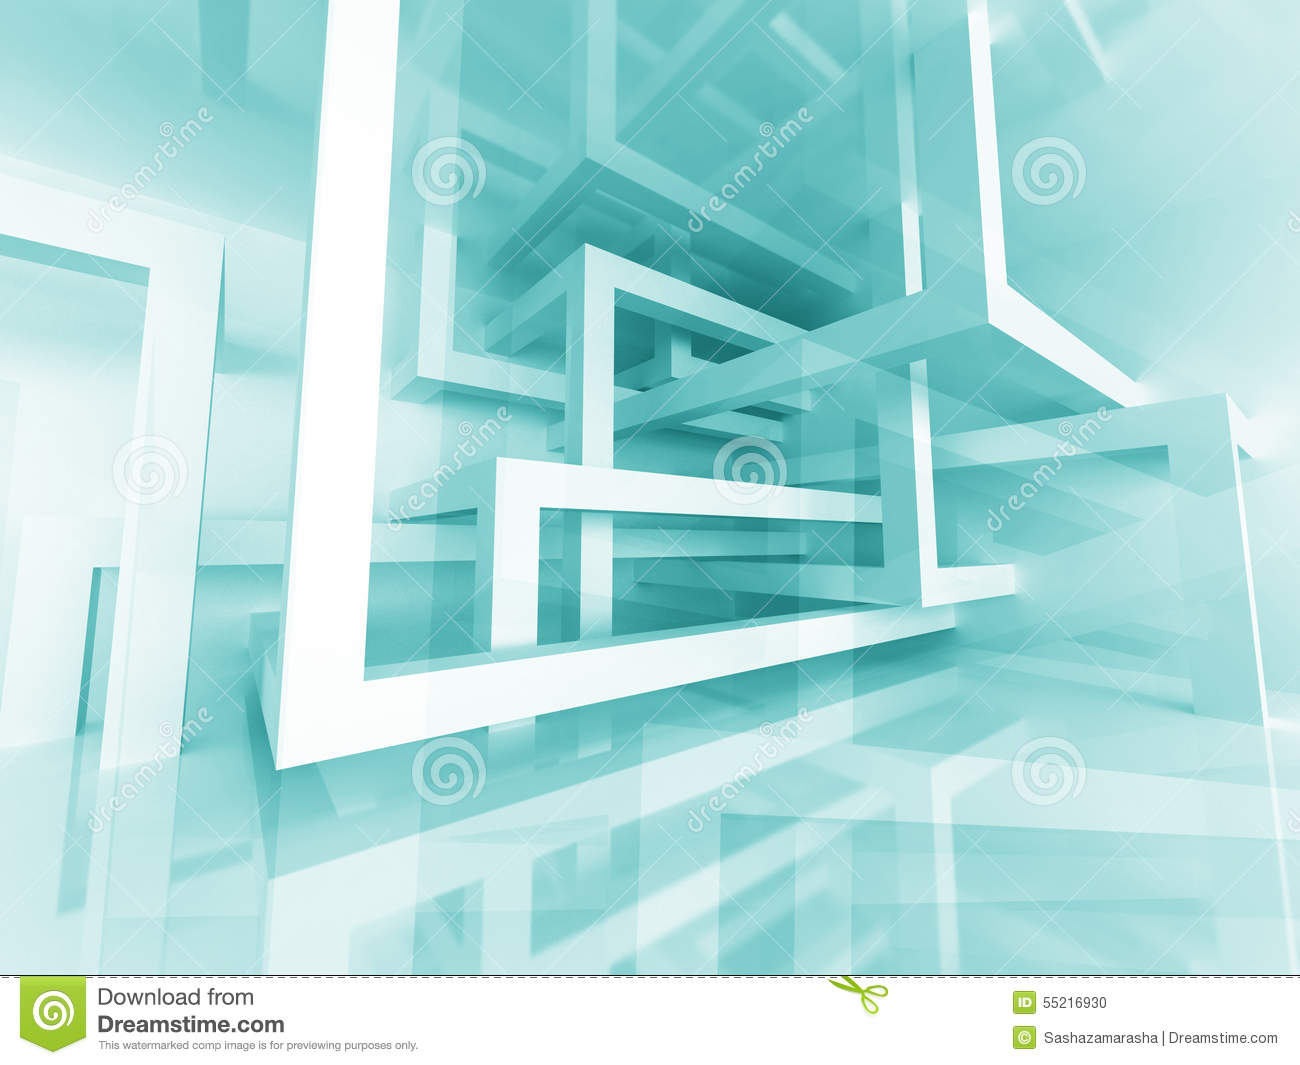 Architecture Design Background abstract construction structure architecture design background